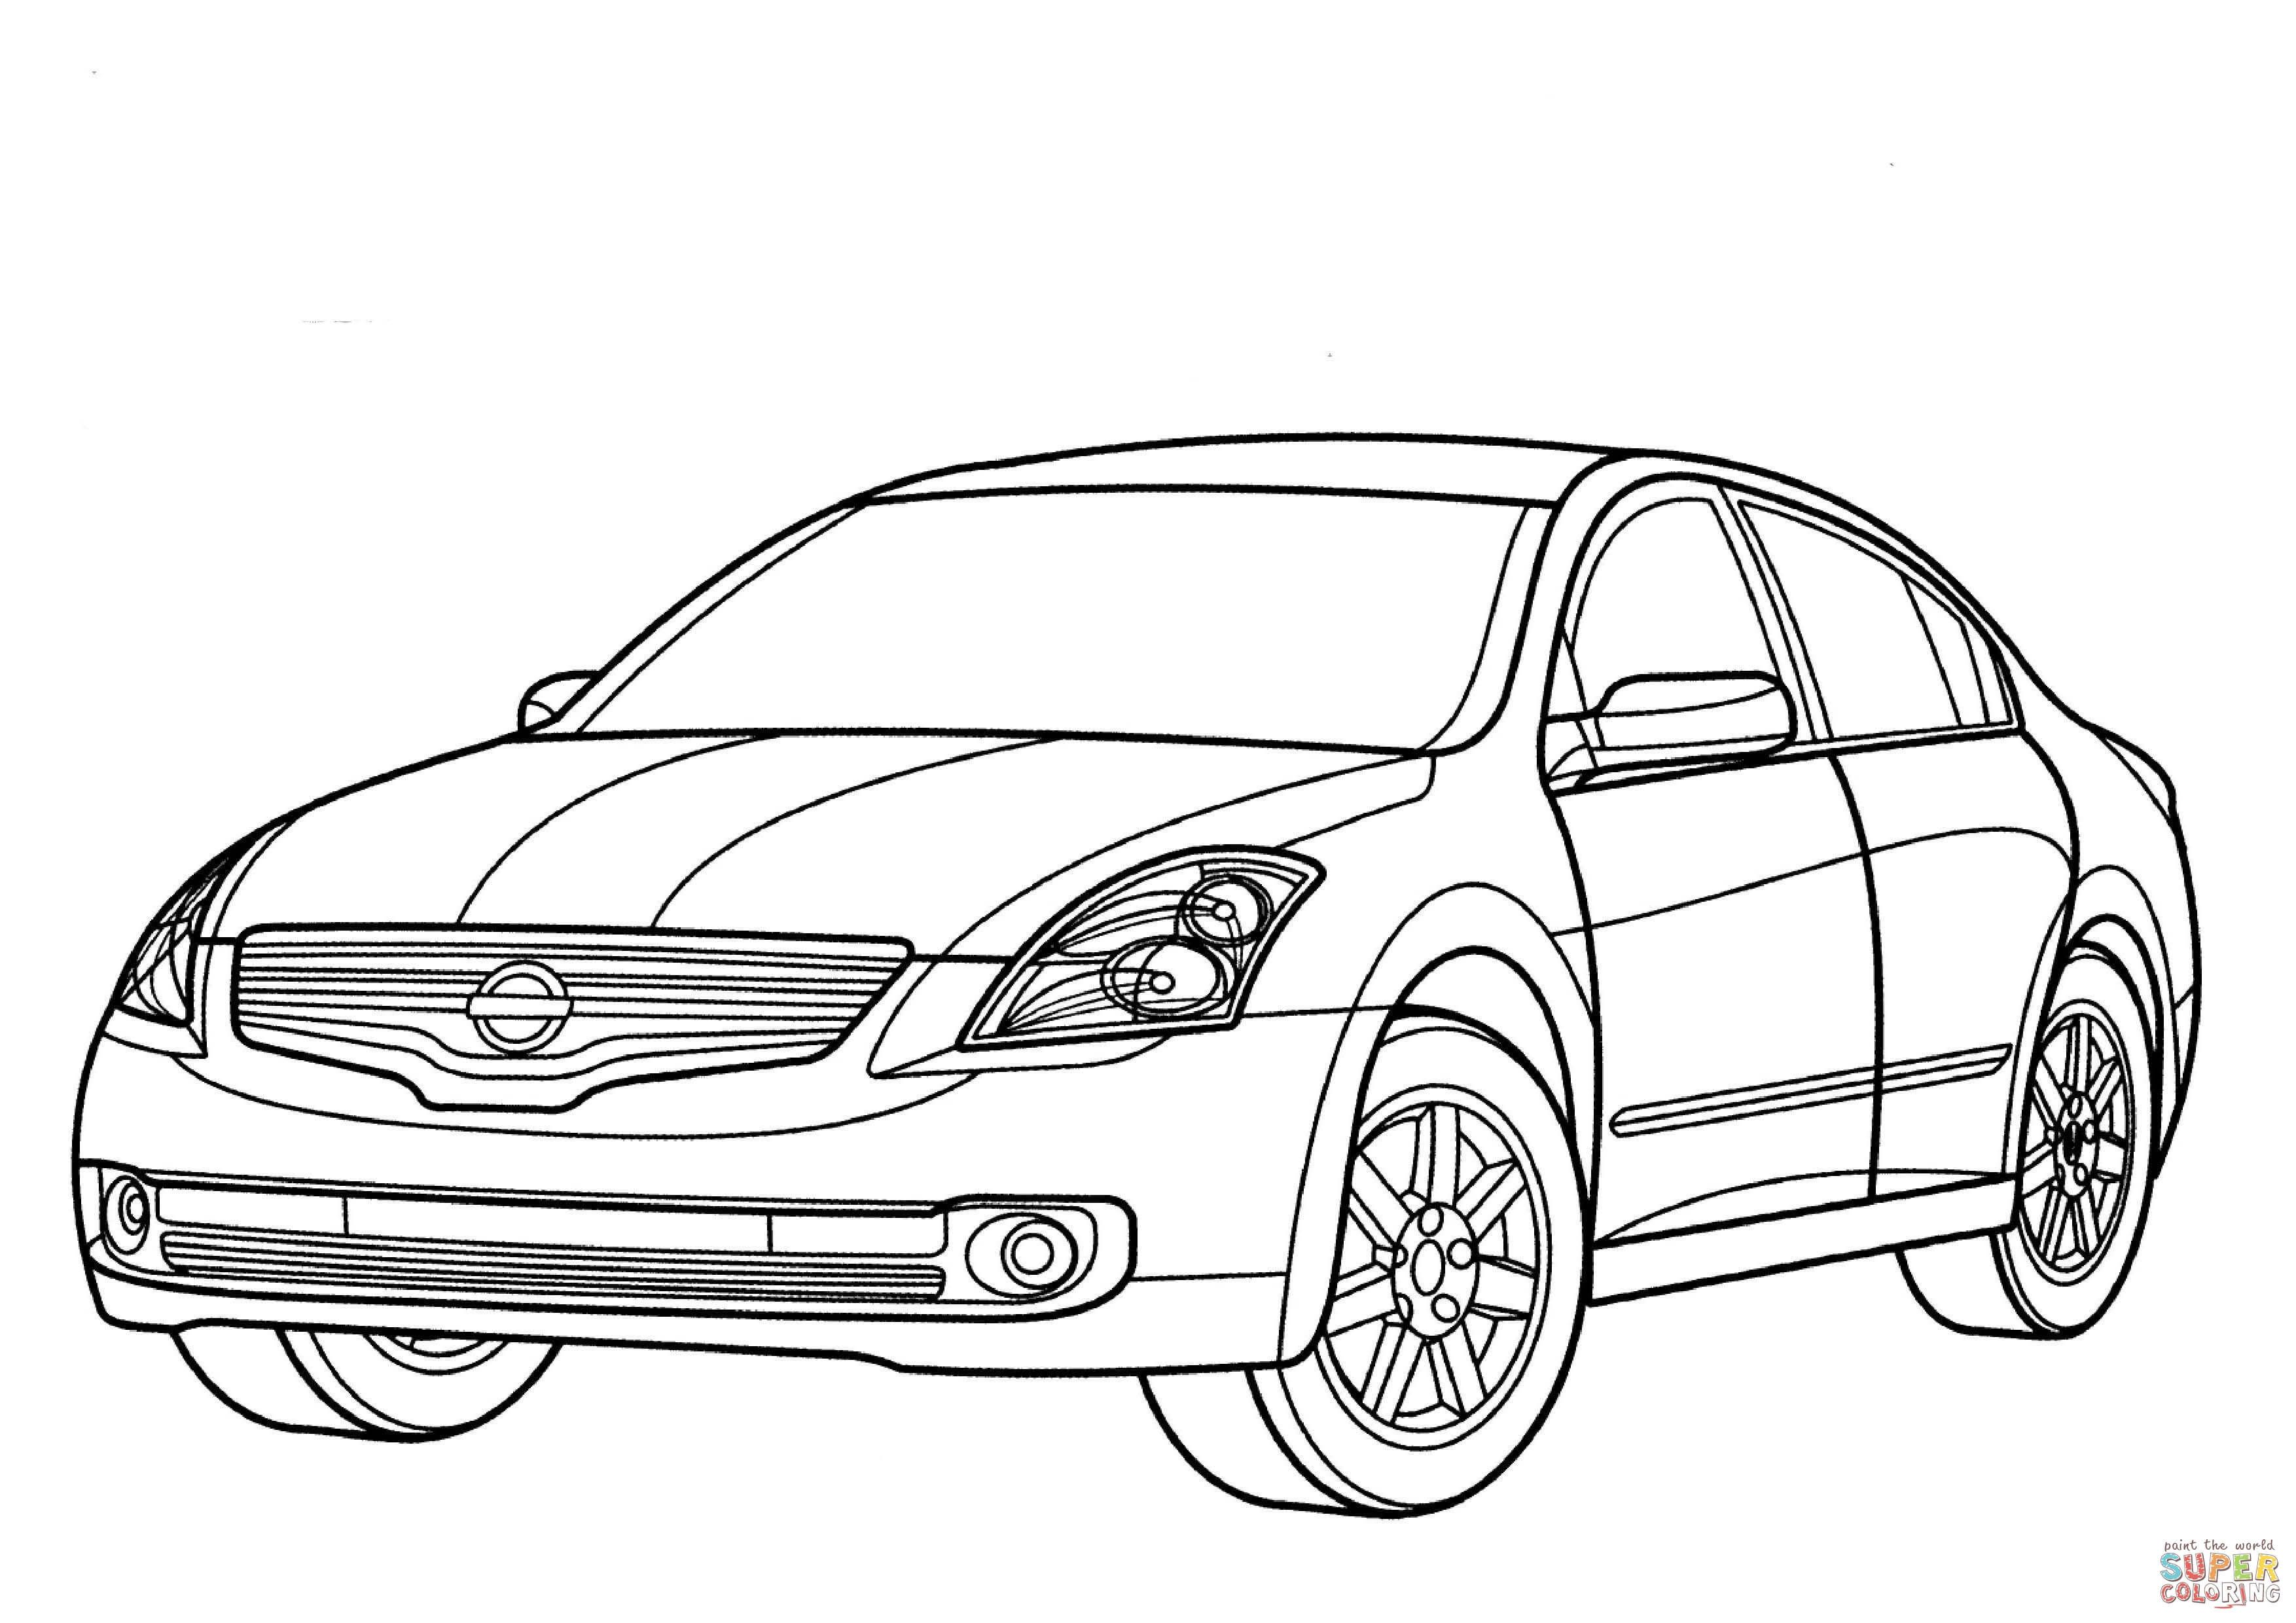 Nissan Altima Hybrid Coloring Page Free Printable